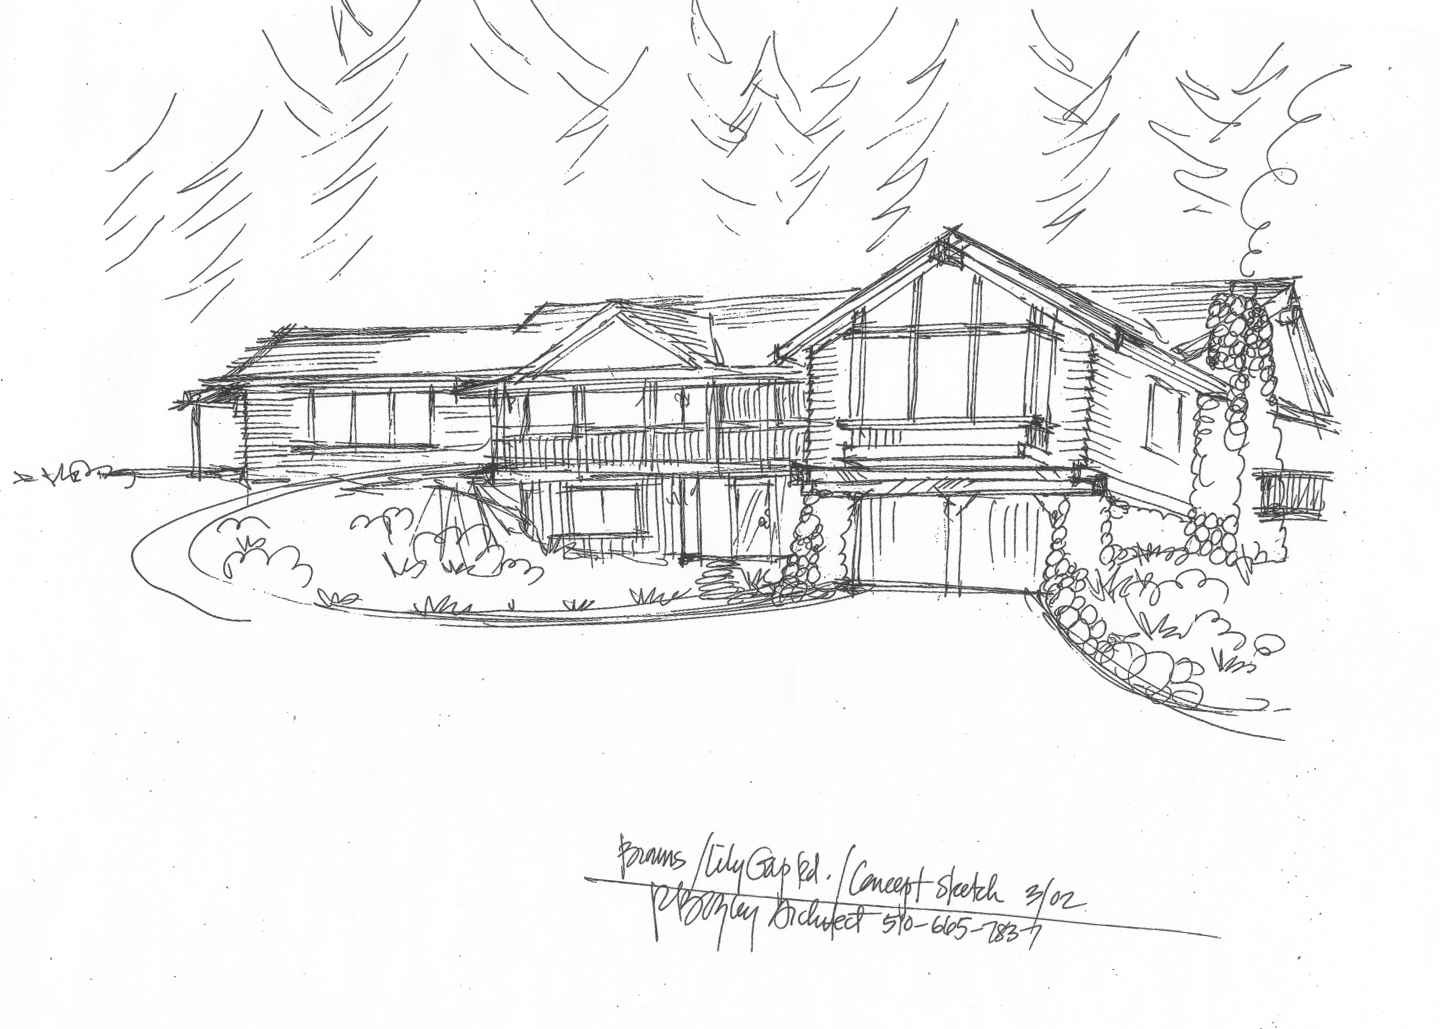 Concept sketch of a new house in the Sierra Foothills